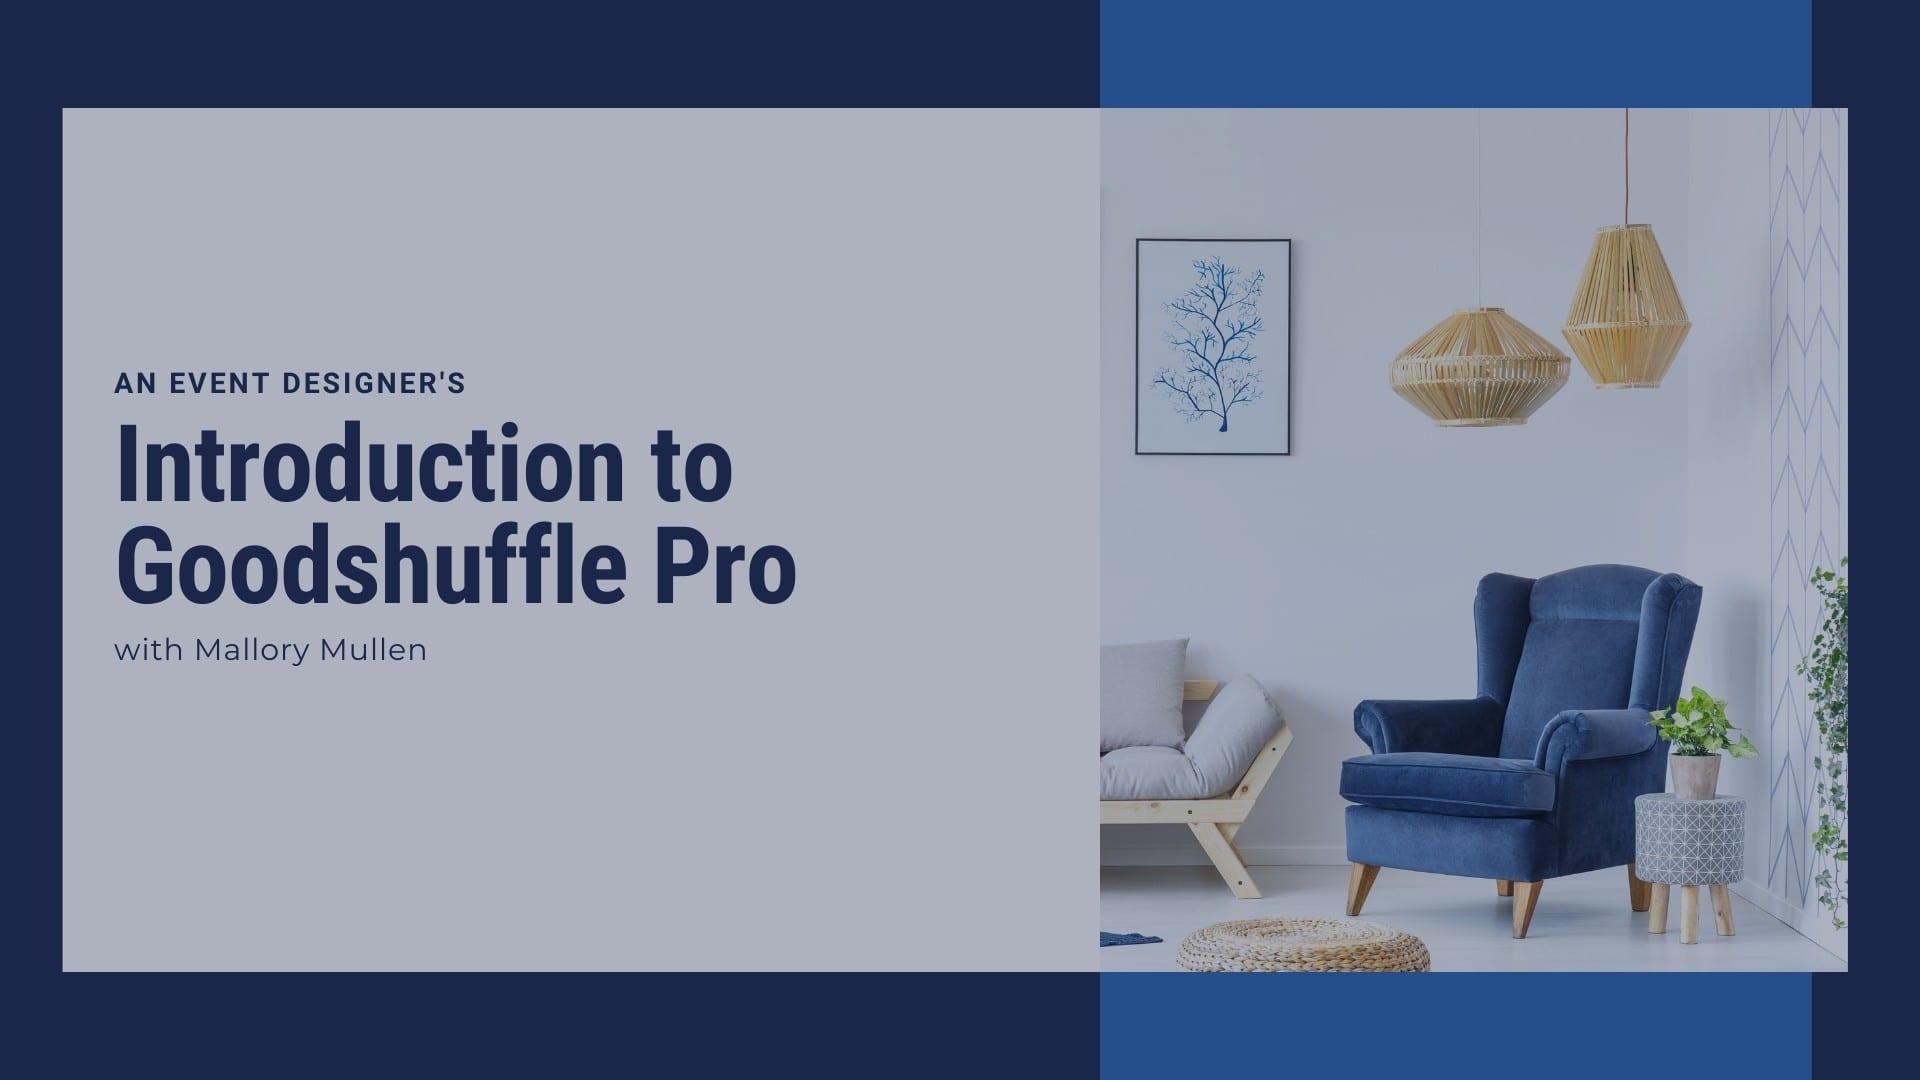 Introduction to Goodshuffle Pro for event design companies